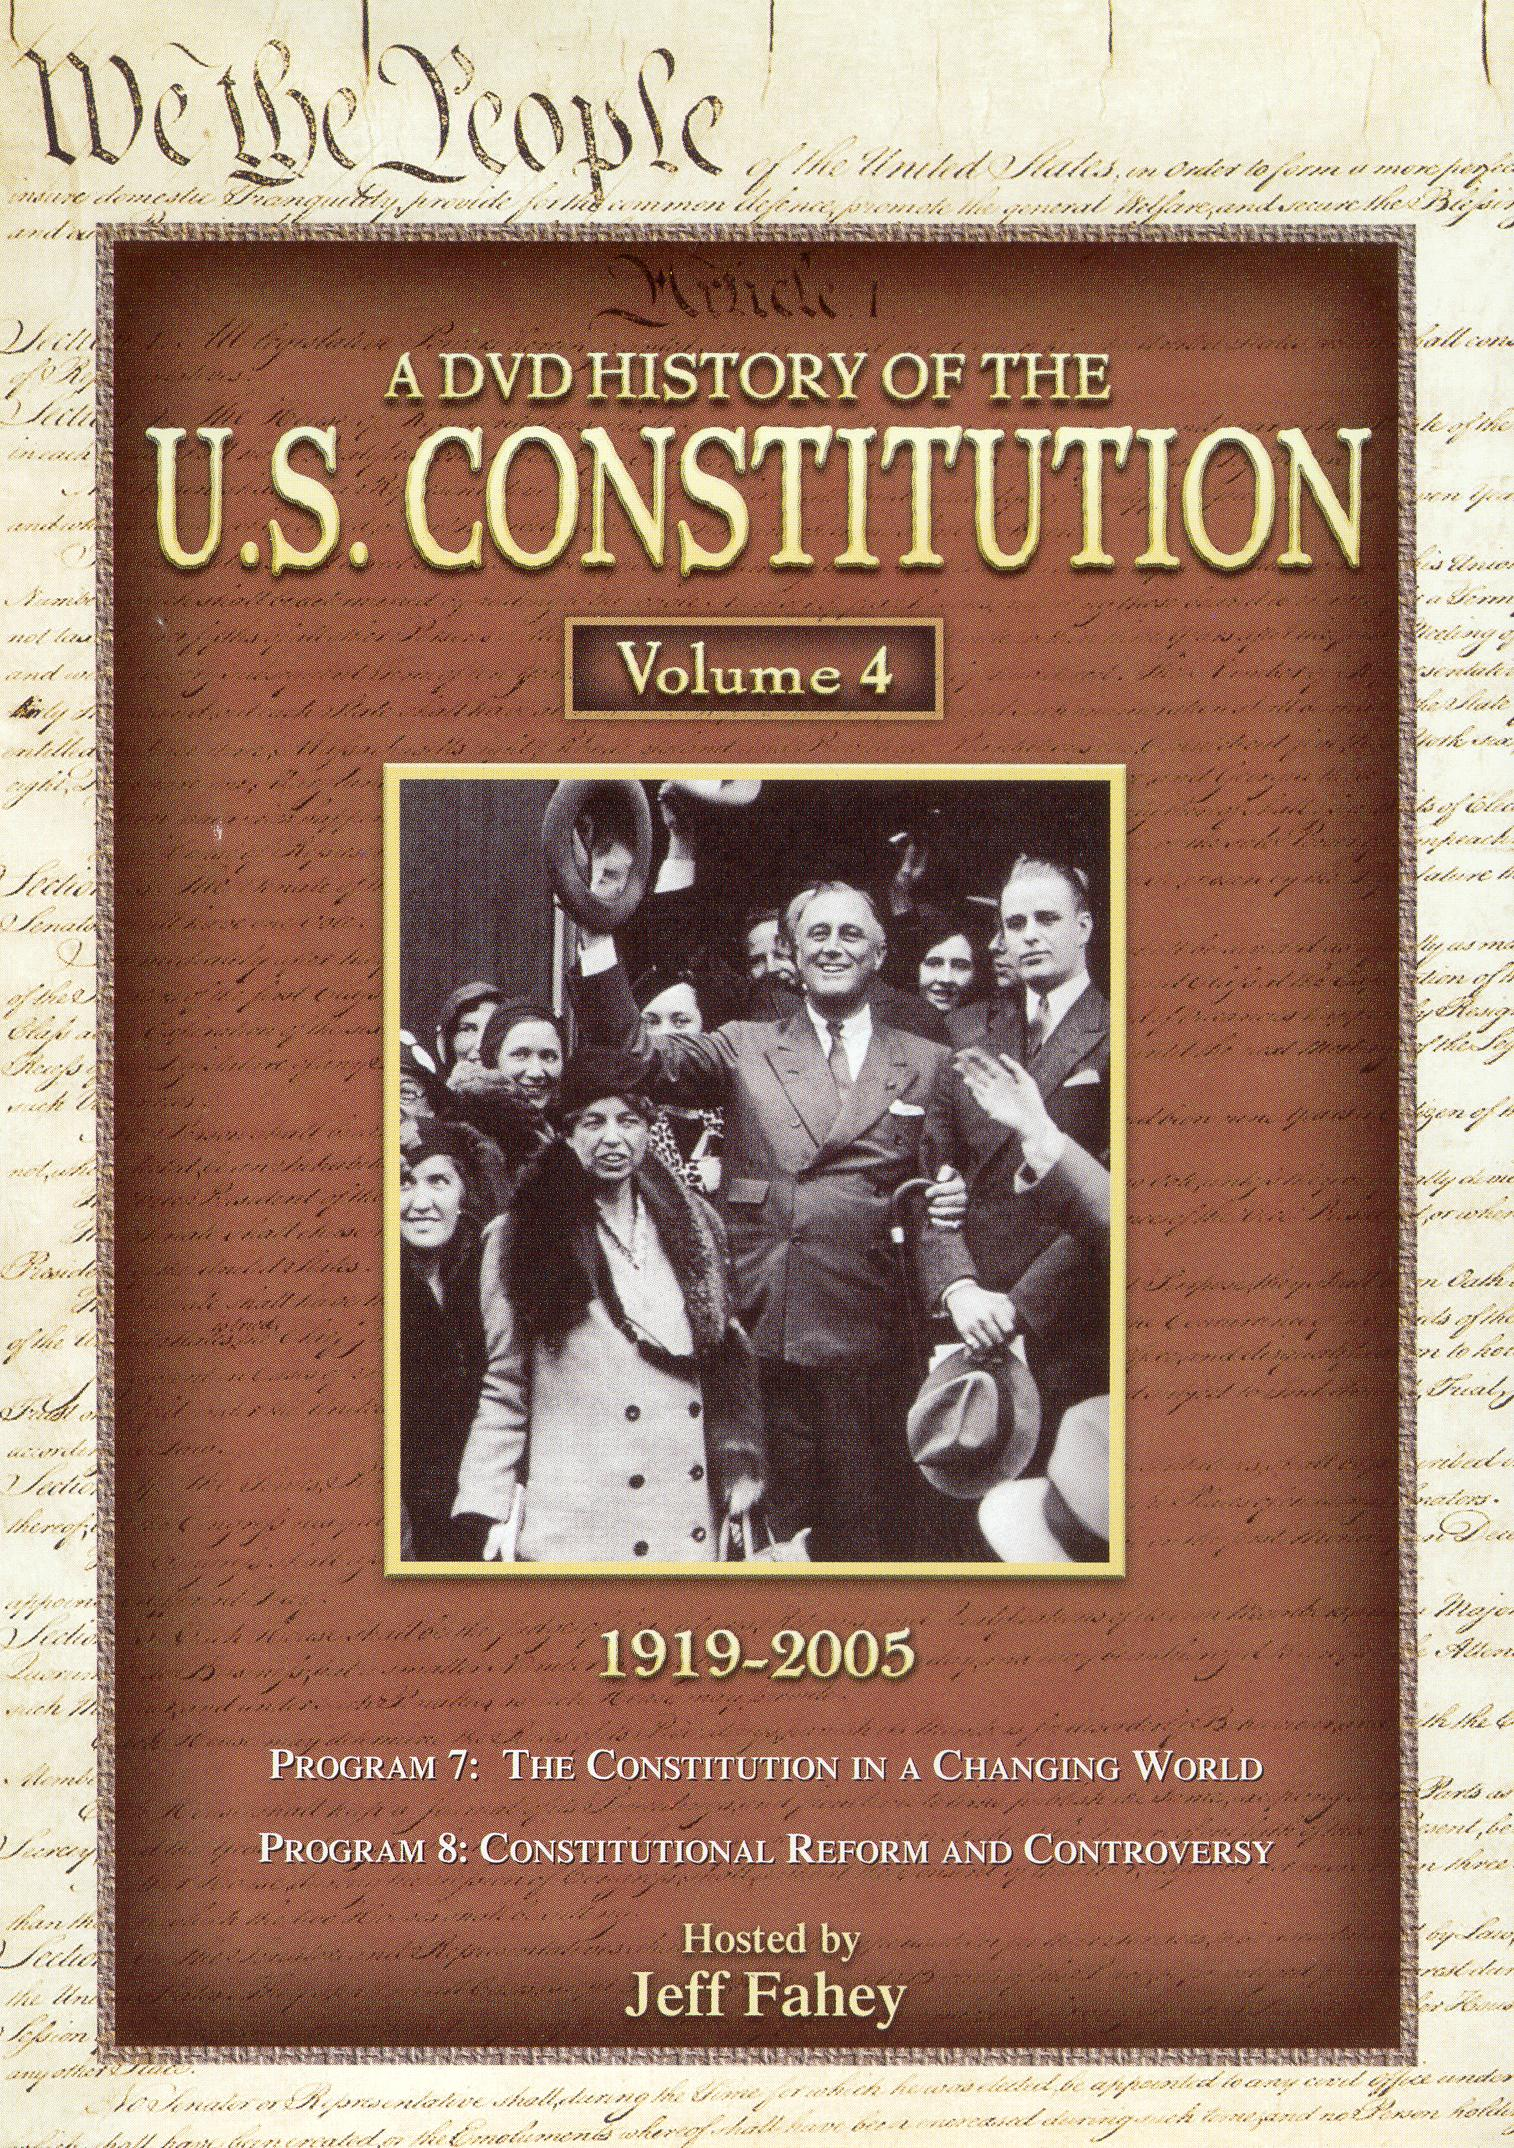 A DVD History of the U.S. Constitution, Vol. 4: 1919-2005